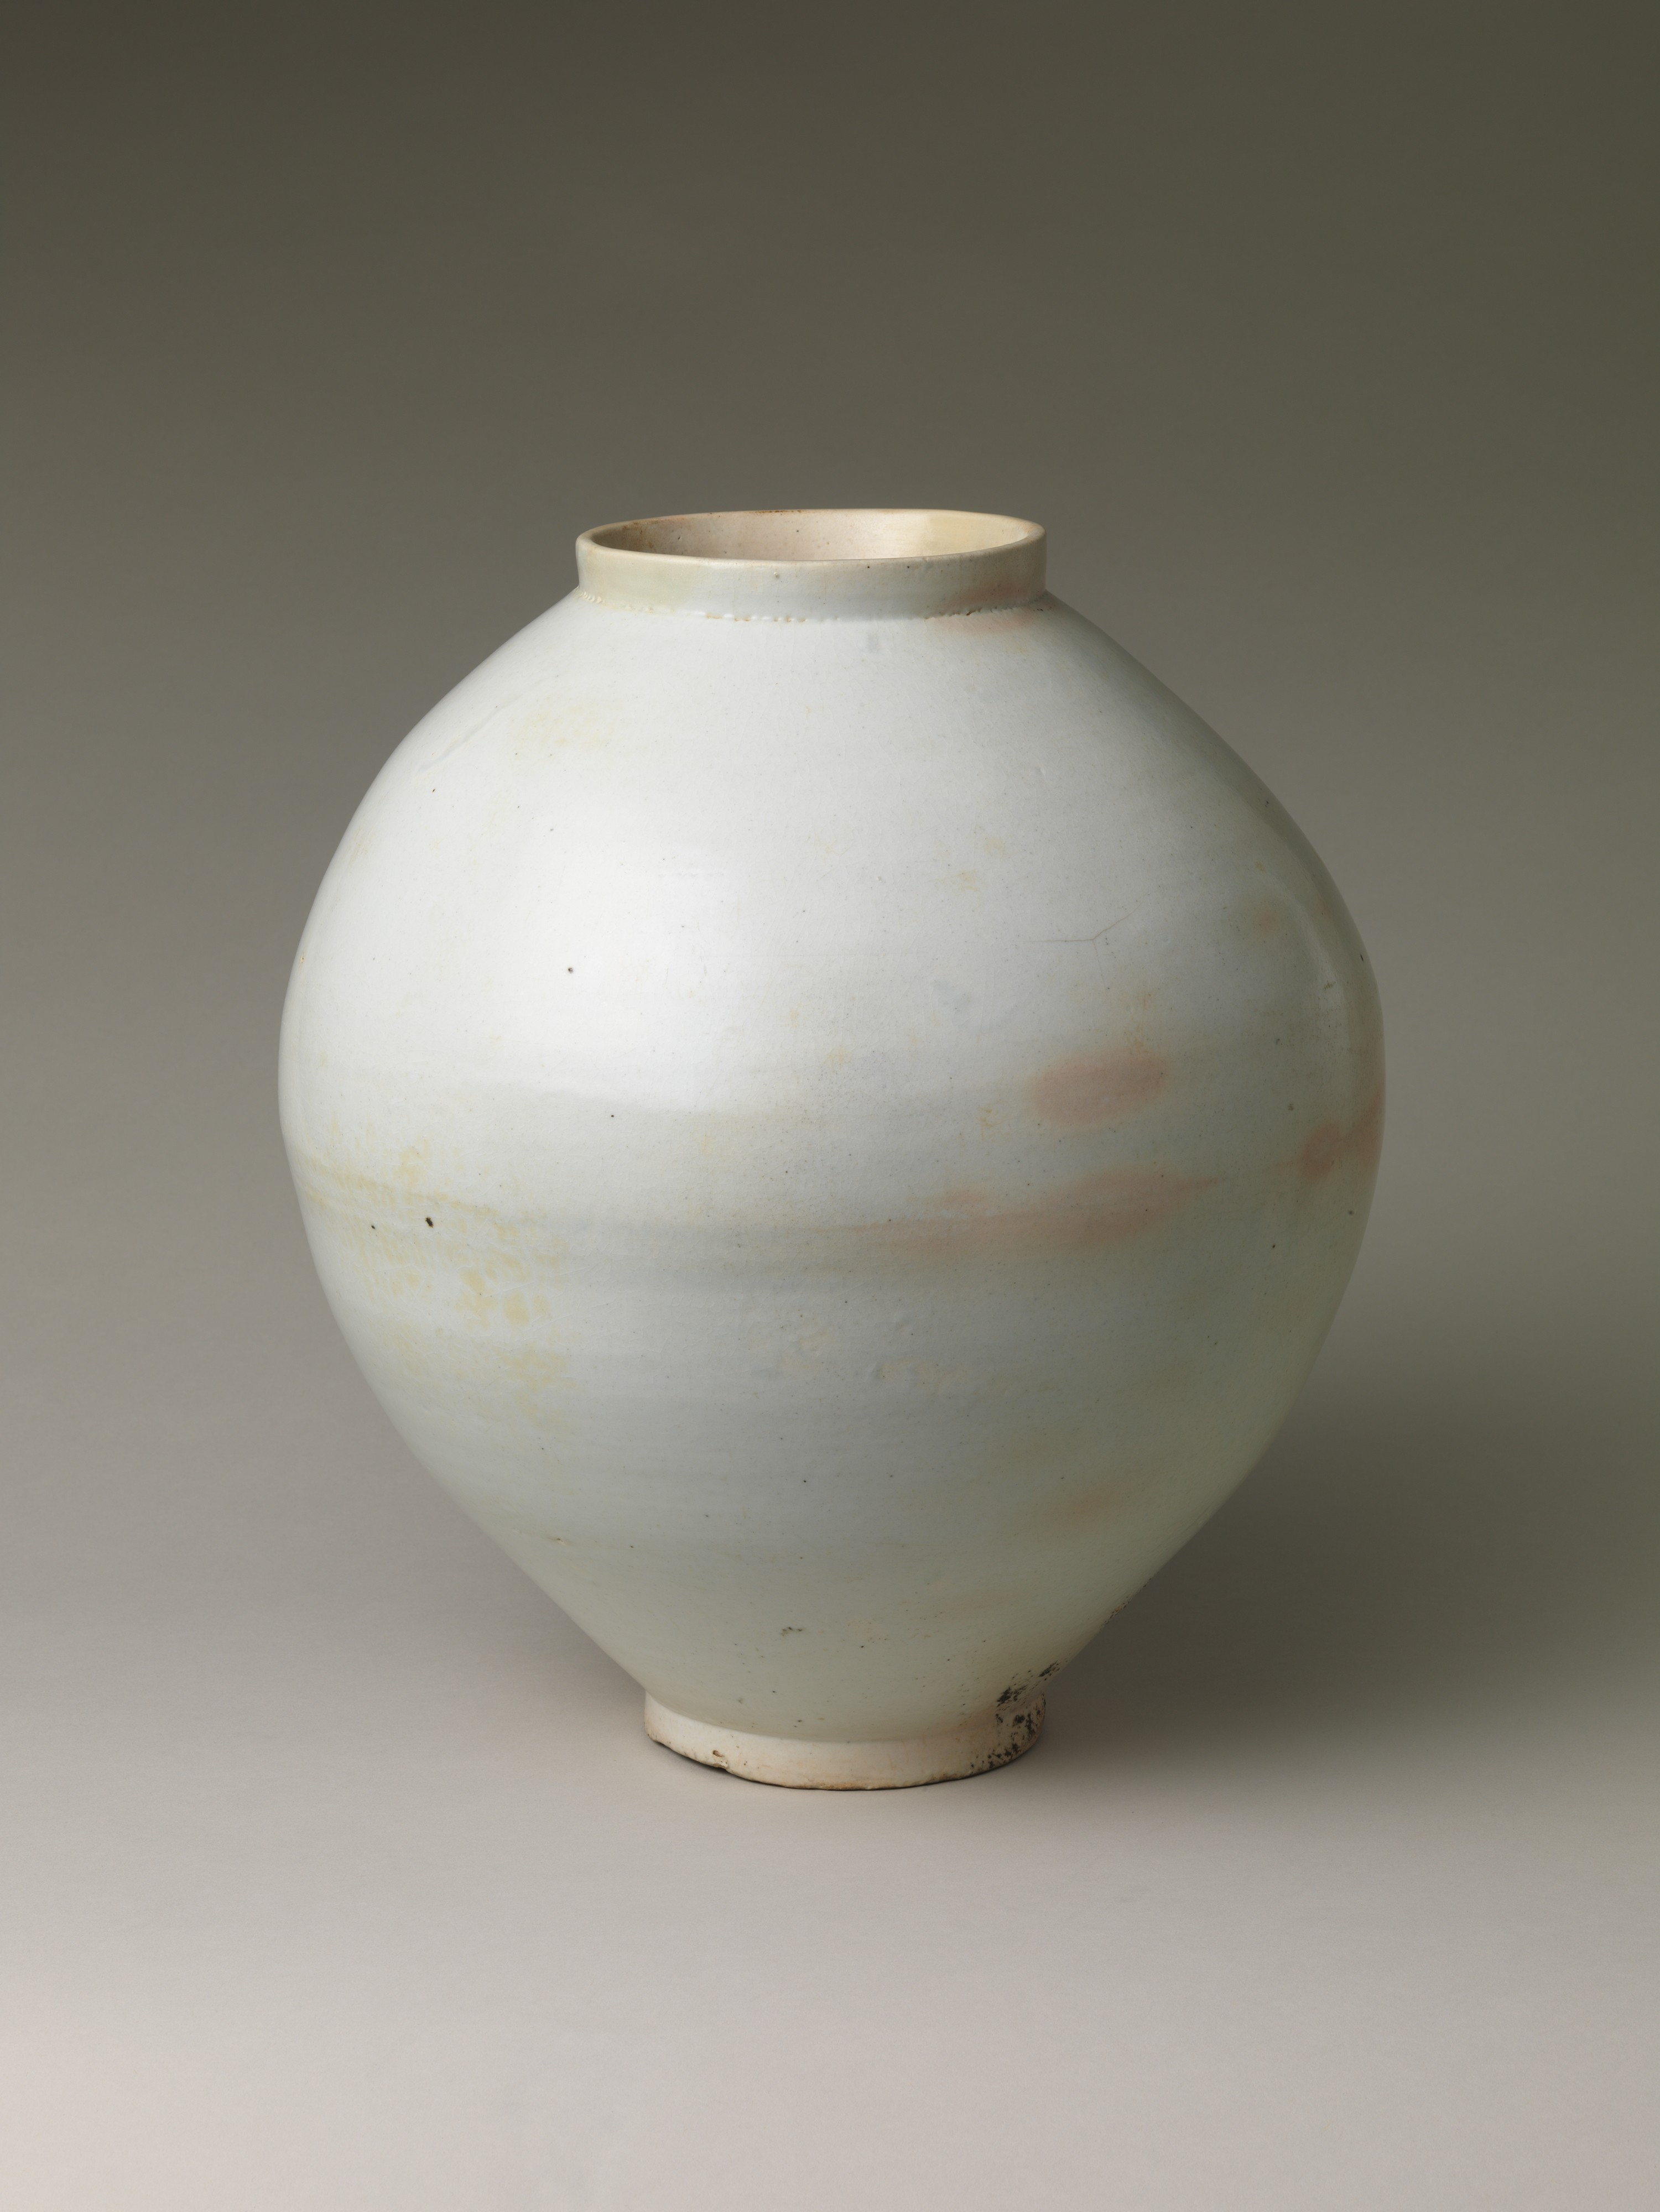 Moon Jar Korea Joseon Dynasty 1392 1910 The Met